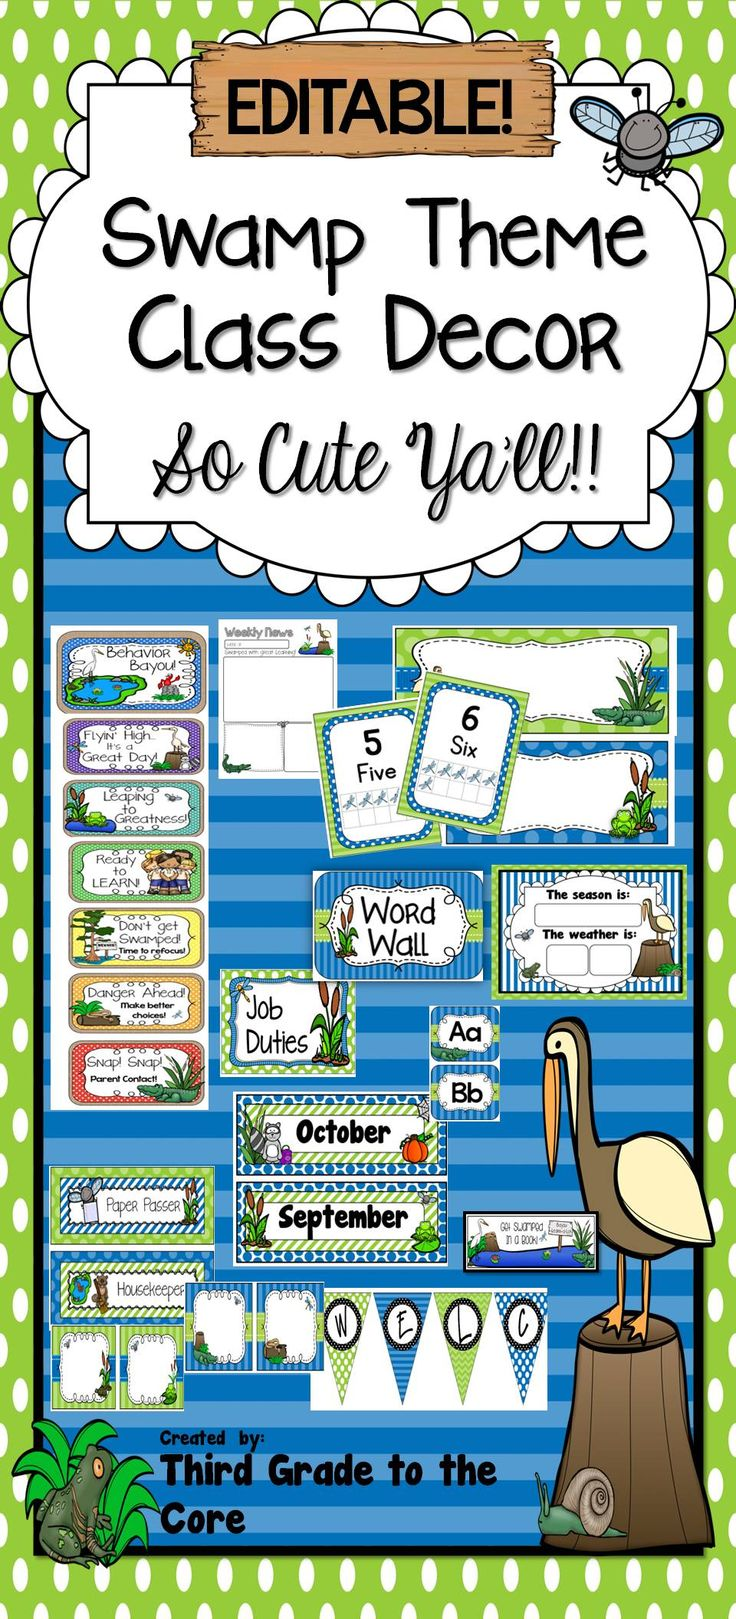 """How about a little """"CAJUN"""" flair in your classroom? Make your class stand out!! The best part is that it is editable!"""